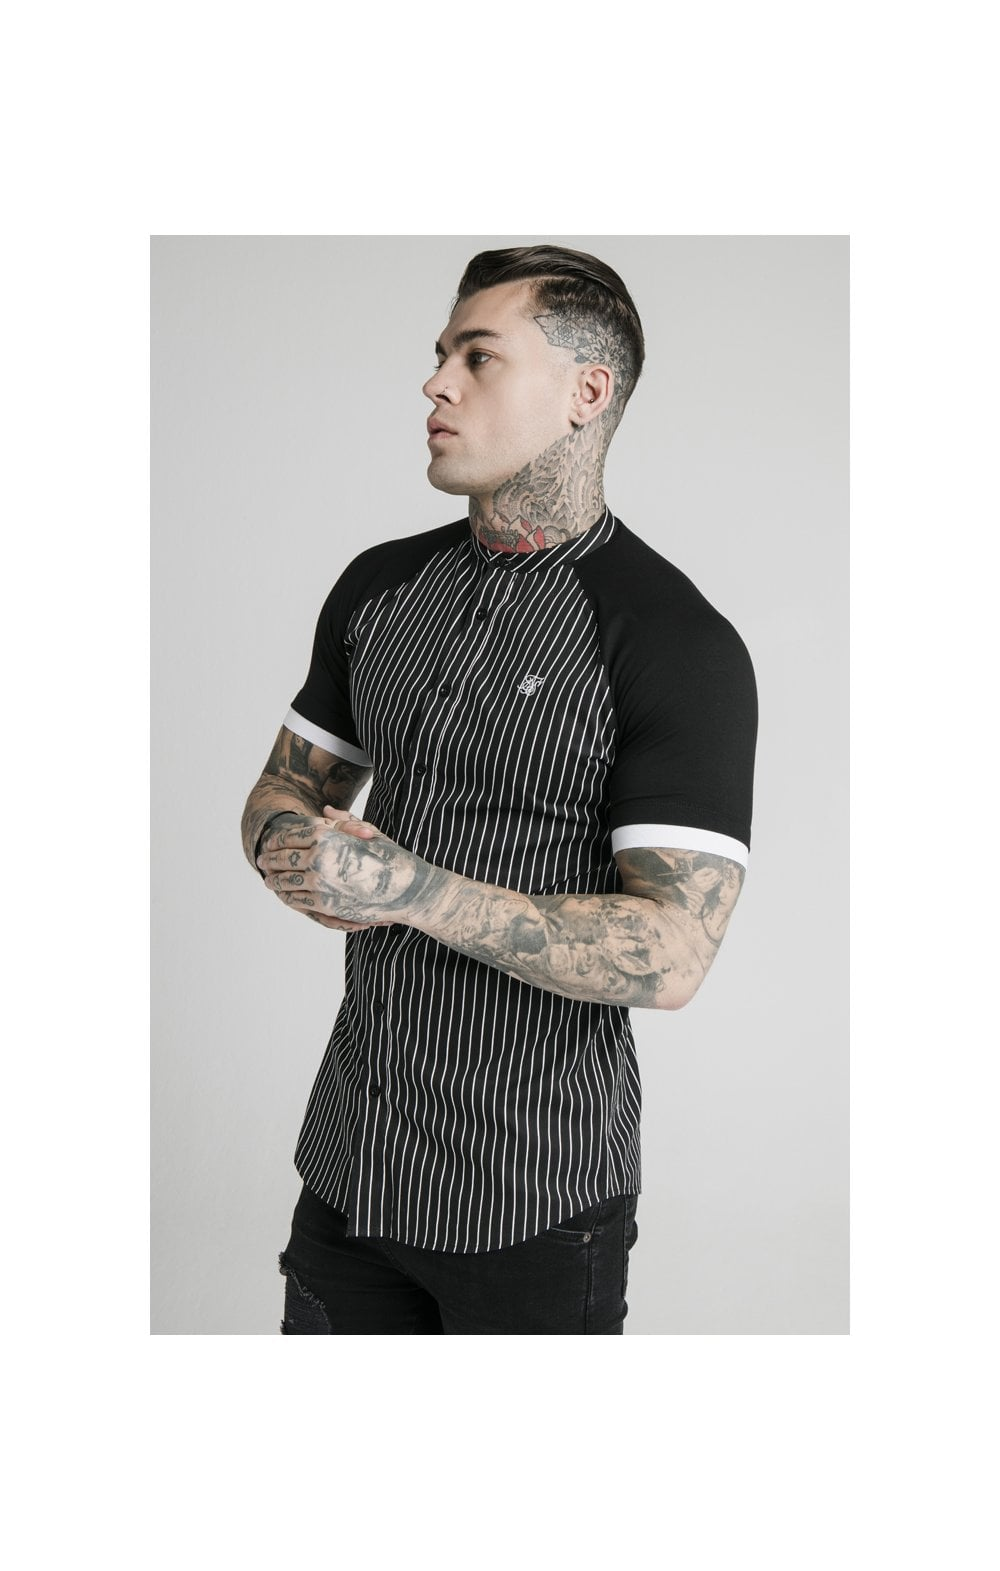 Load image into Gallery viewer, SikSilk S/S Raglan Inset Cuff  Shirt - Black & White